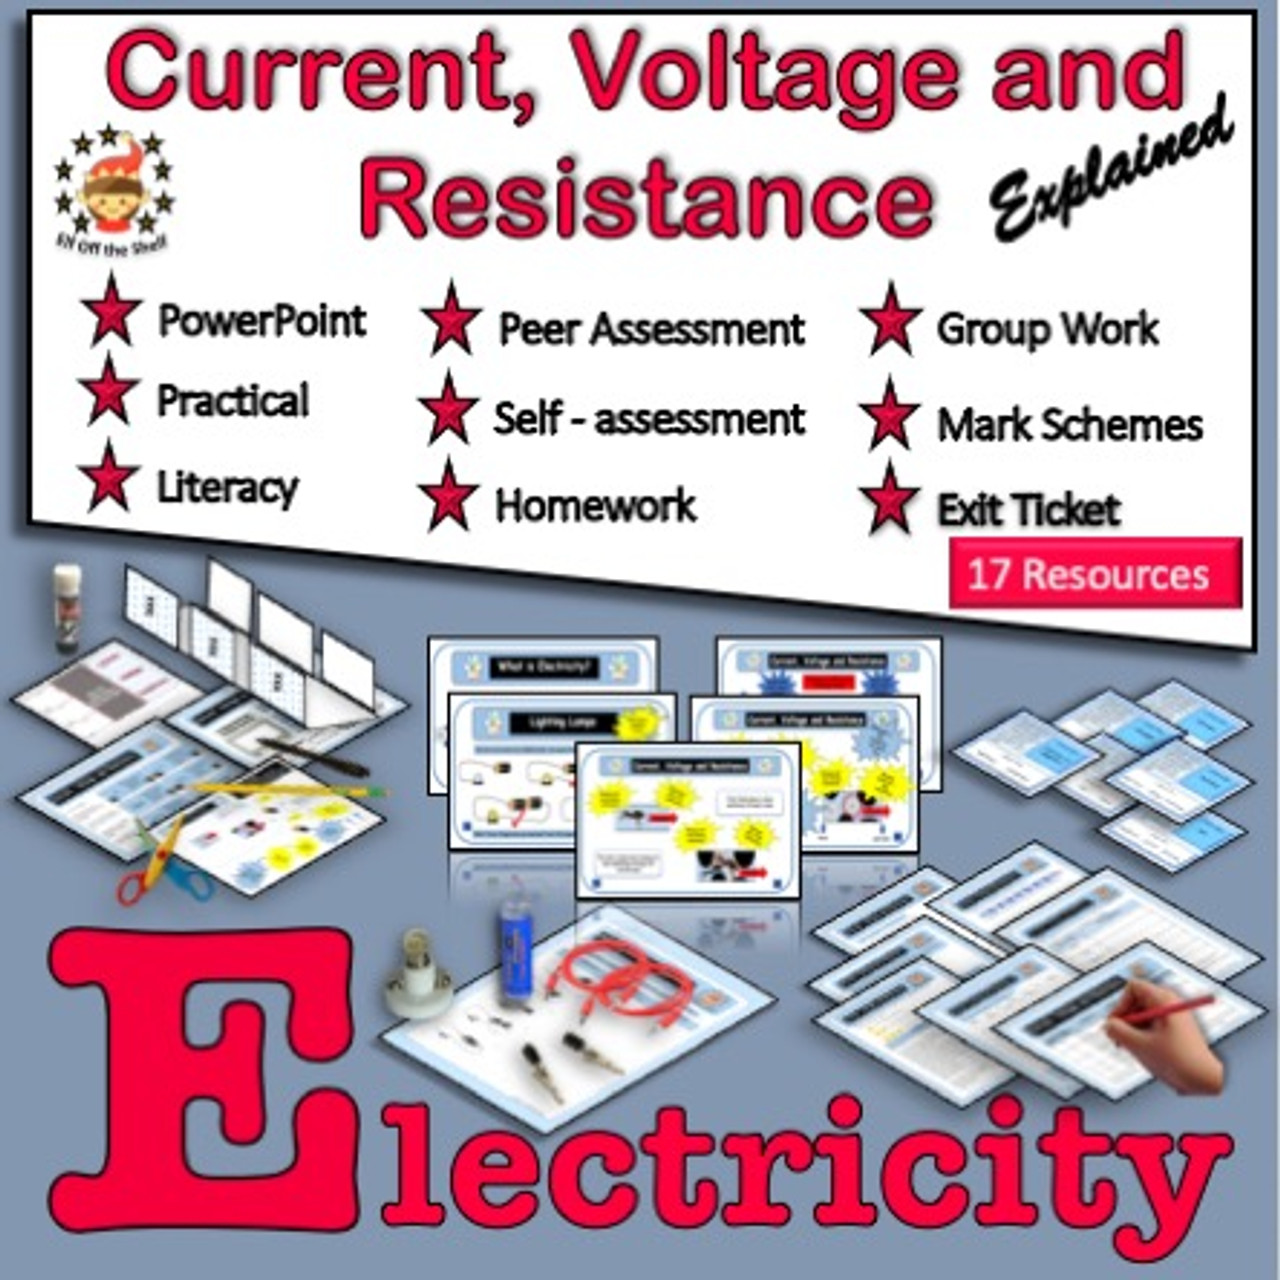 Current, Voltage and Resistance - What are They?